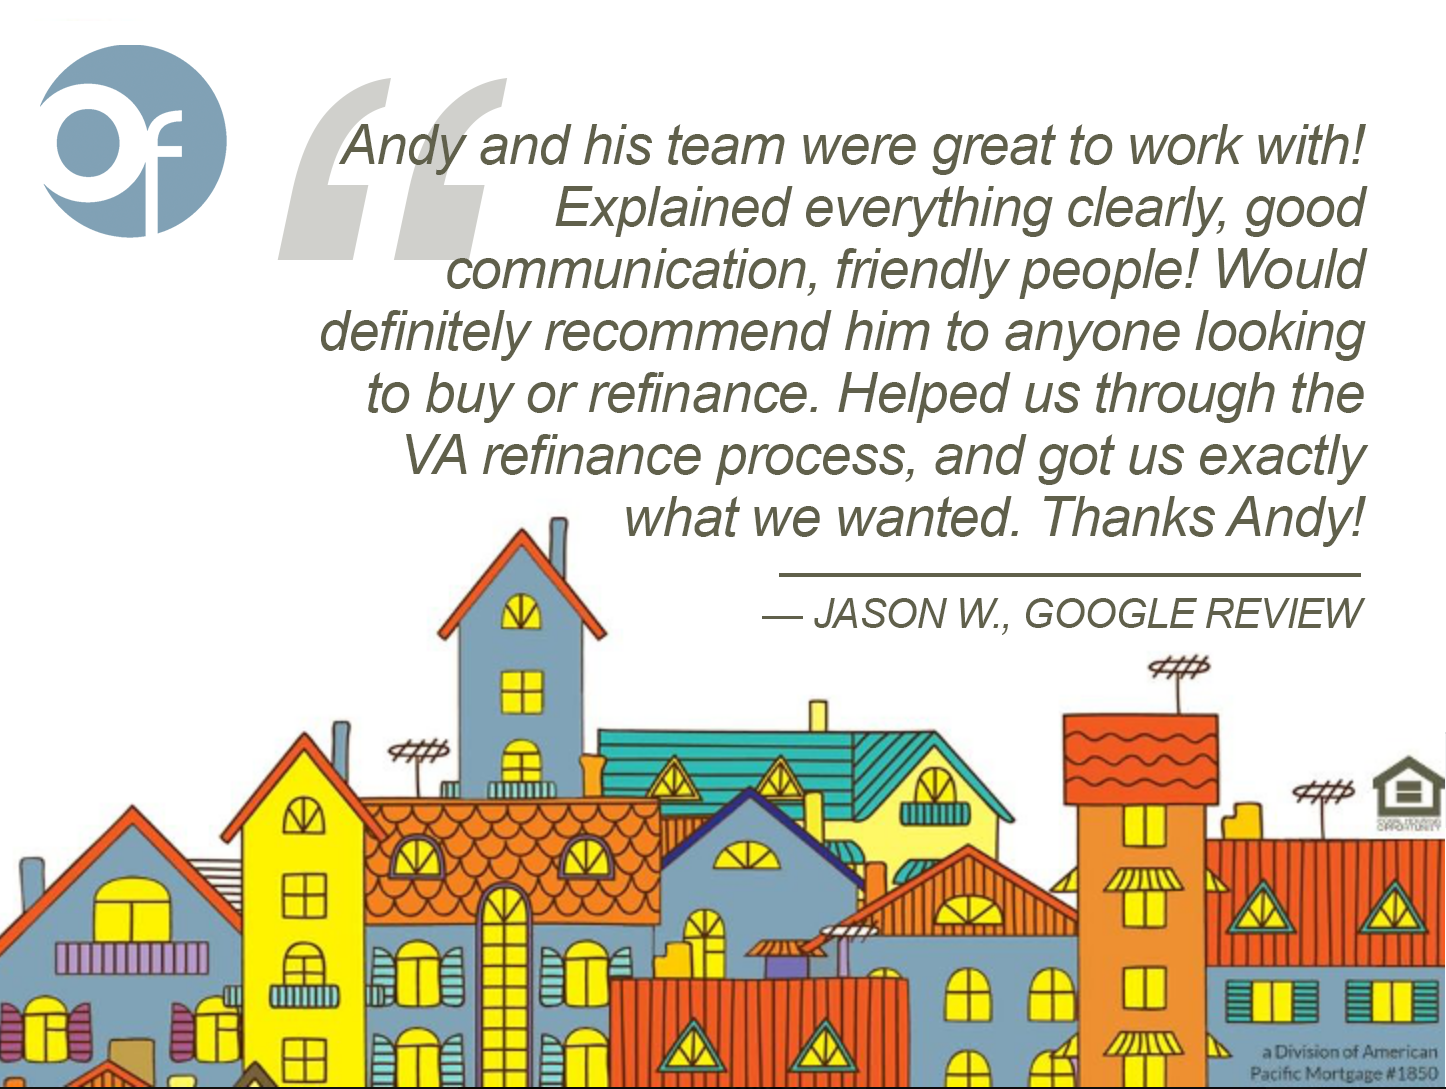 Andy and his team were great to work with! Explained everything clearly, good communication, friendly people! Would definitely recommend him to anyone looking to buy or refinance. Helped us through the VA refinance process, and got us exactly what we wanted. Thanks Andy!